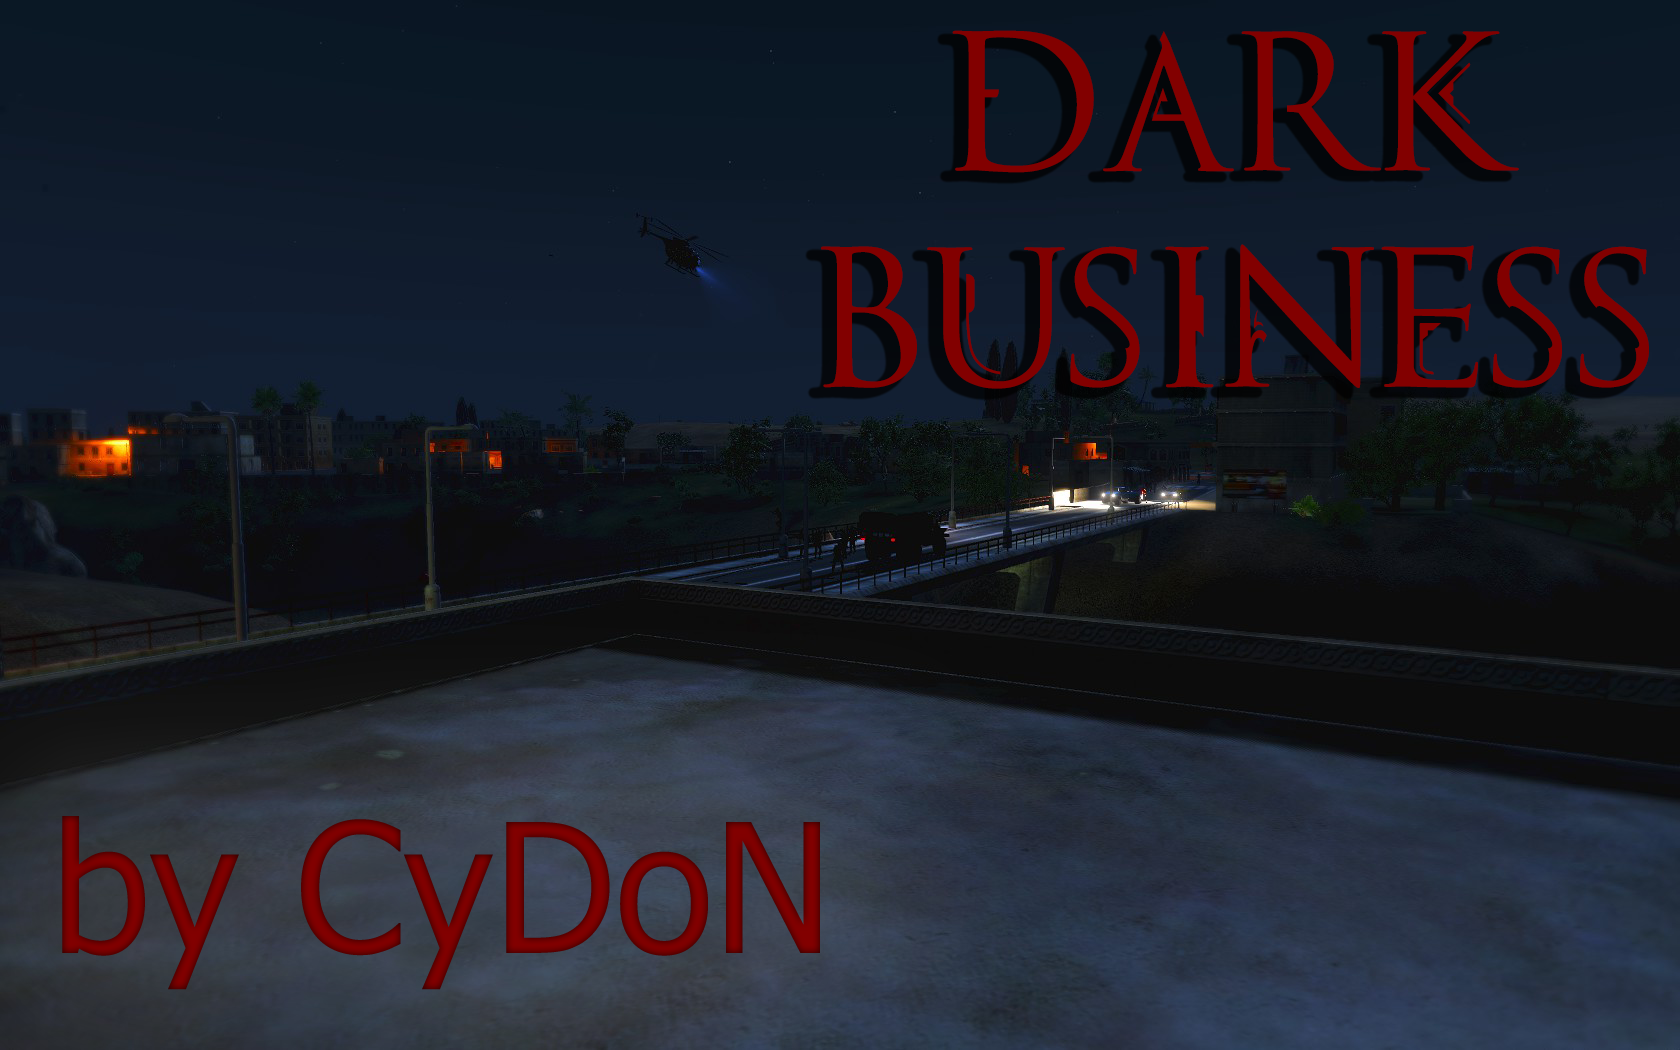 Dark Business